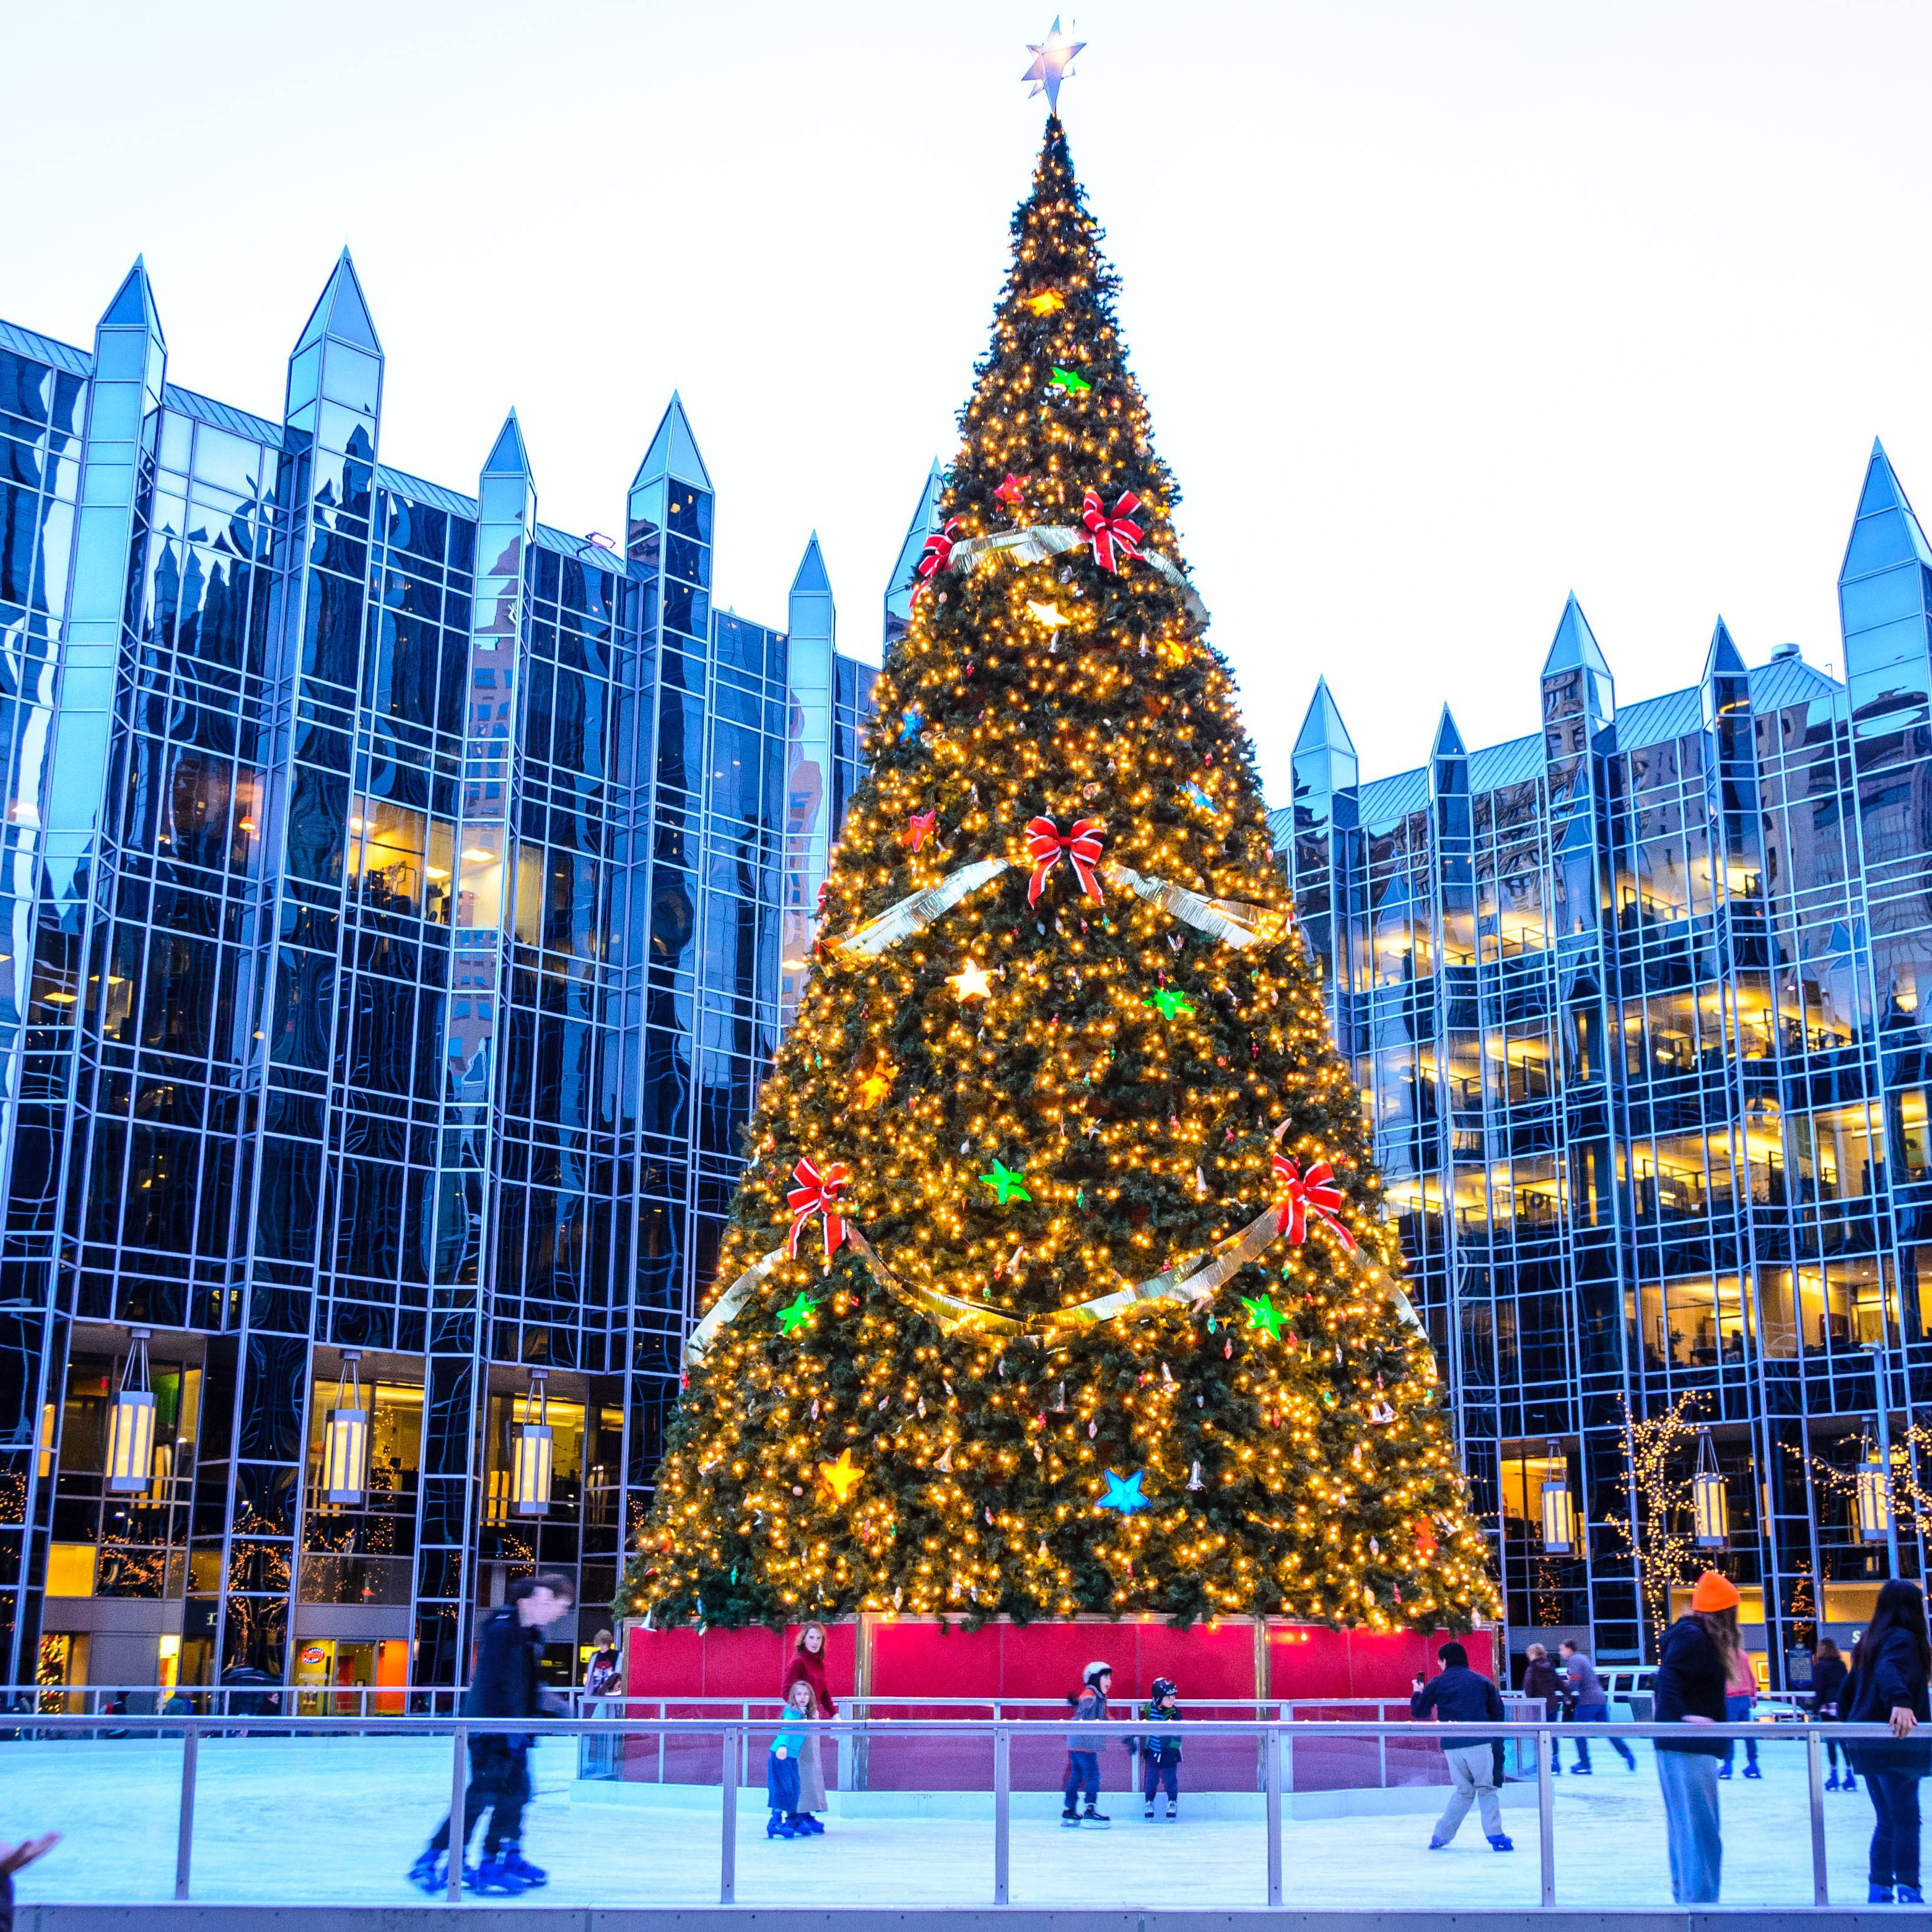 Christmas Ice Skating Rink Decoration.Skating In Downtown Pittsburgh At The Ppg Ice Rink